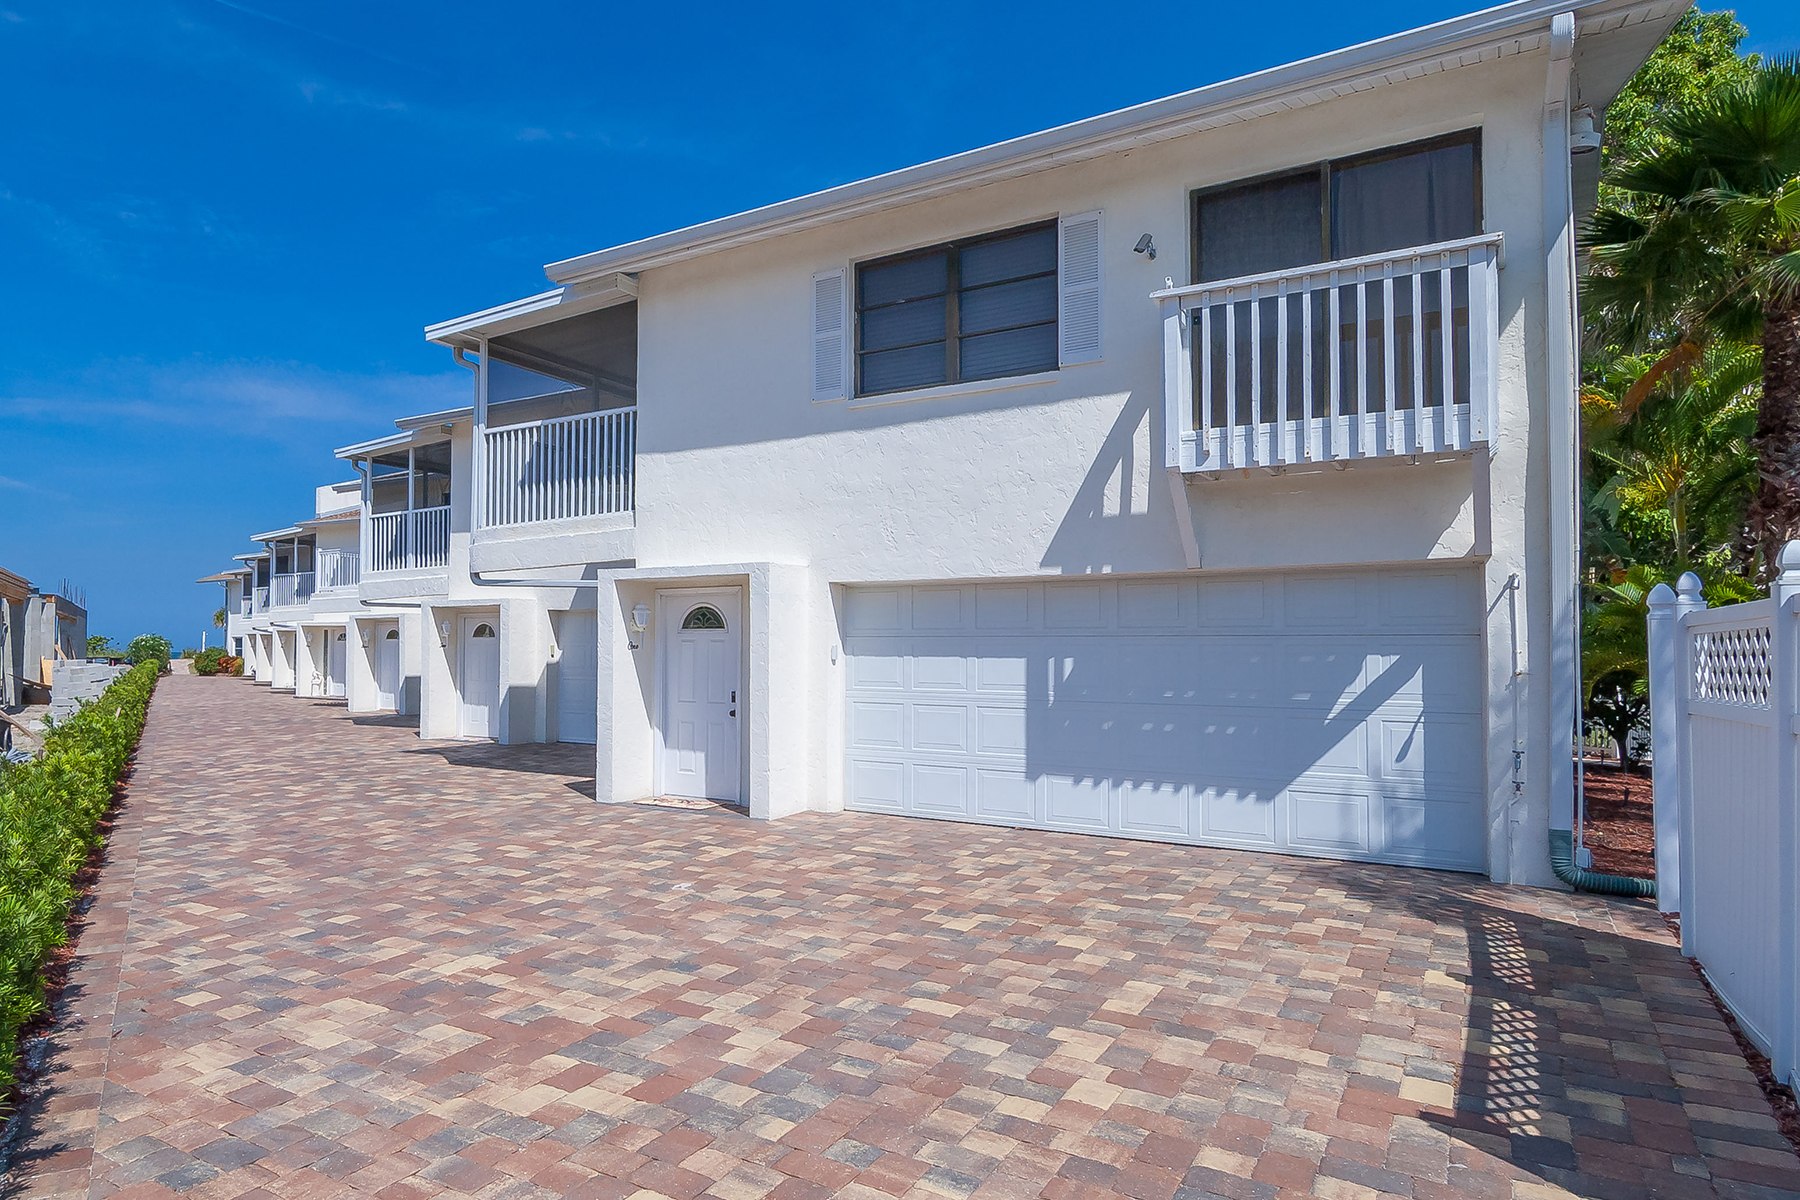 Condominium for Sale at ENGLEWOOD 2710 N Beach Rd 5 Englewood, Florida, 34223 United States